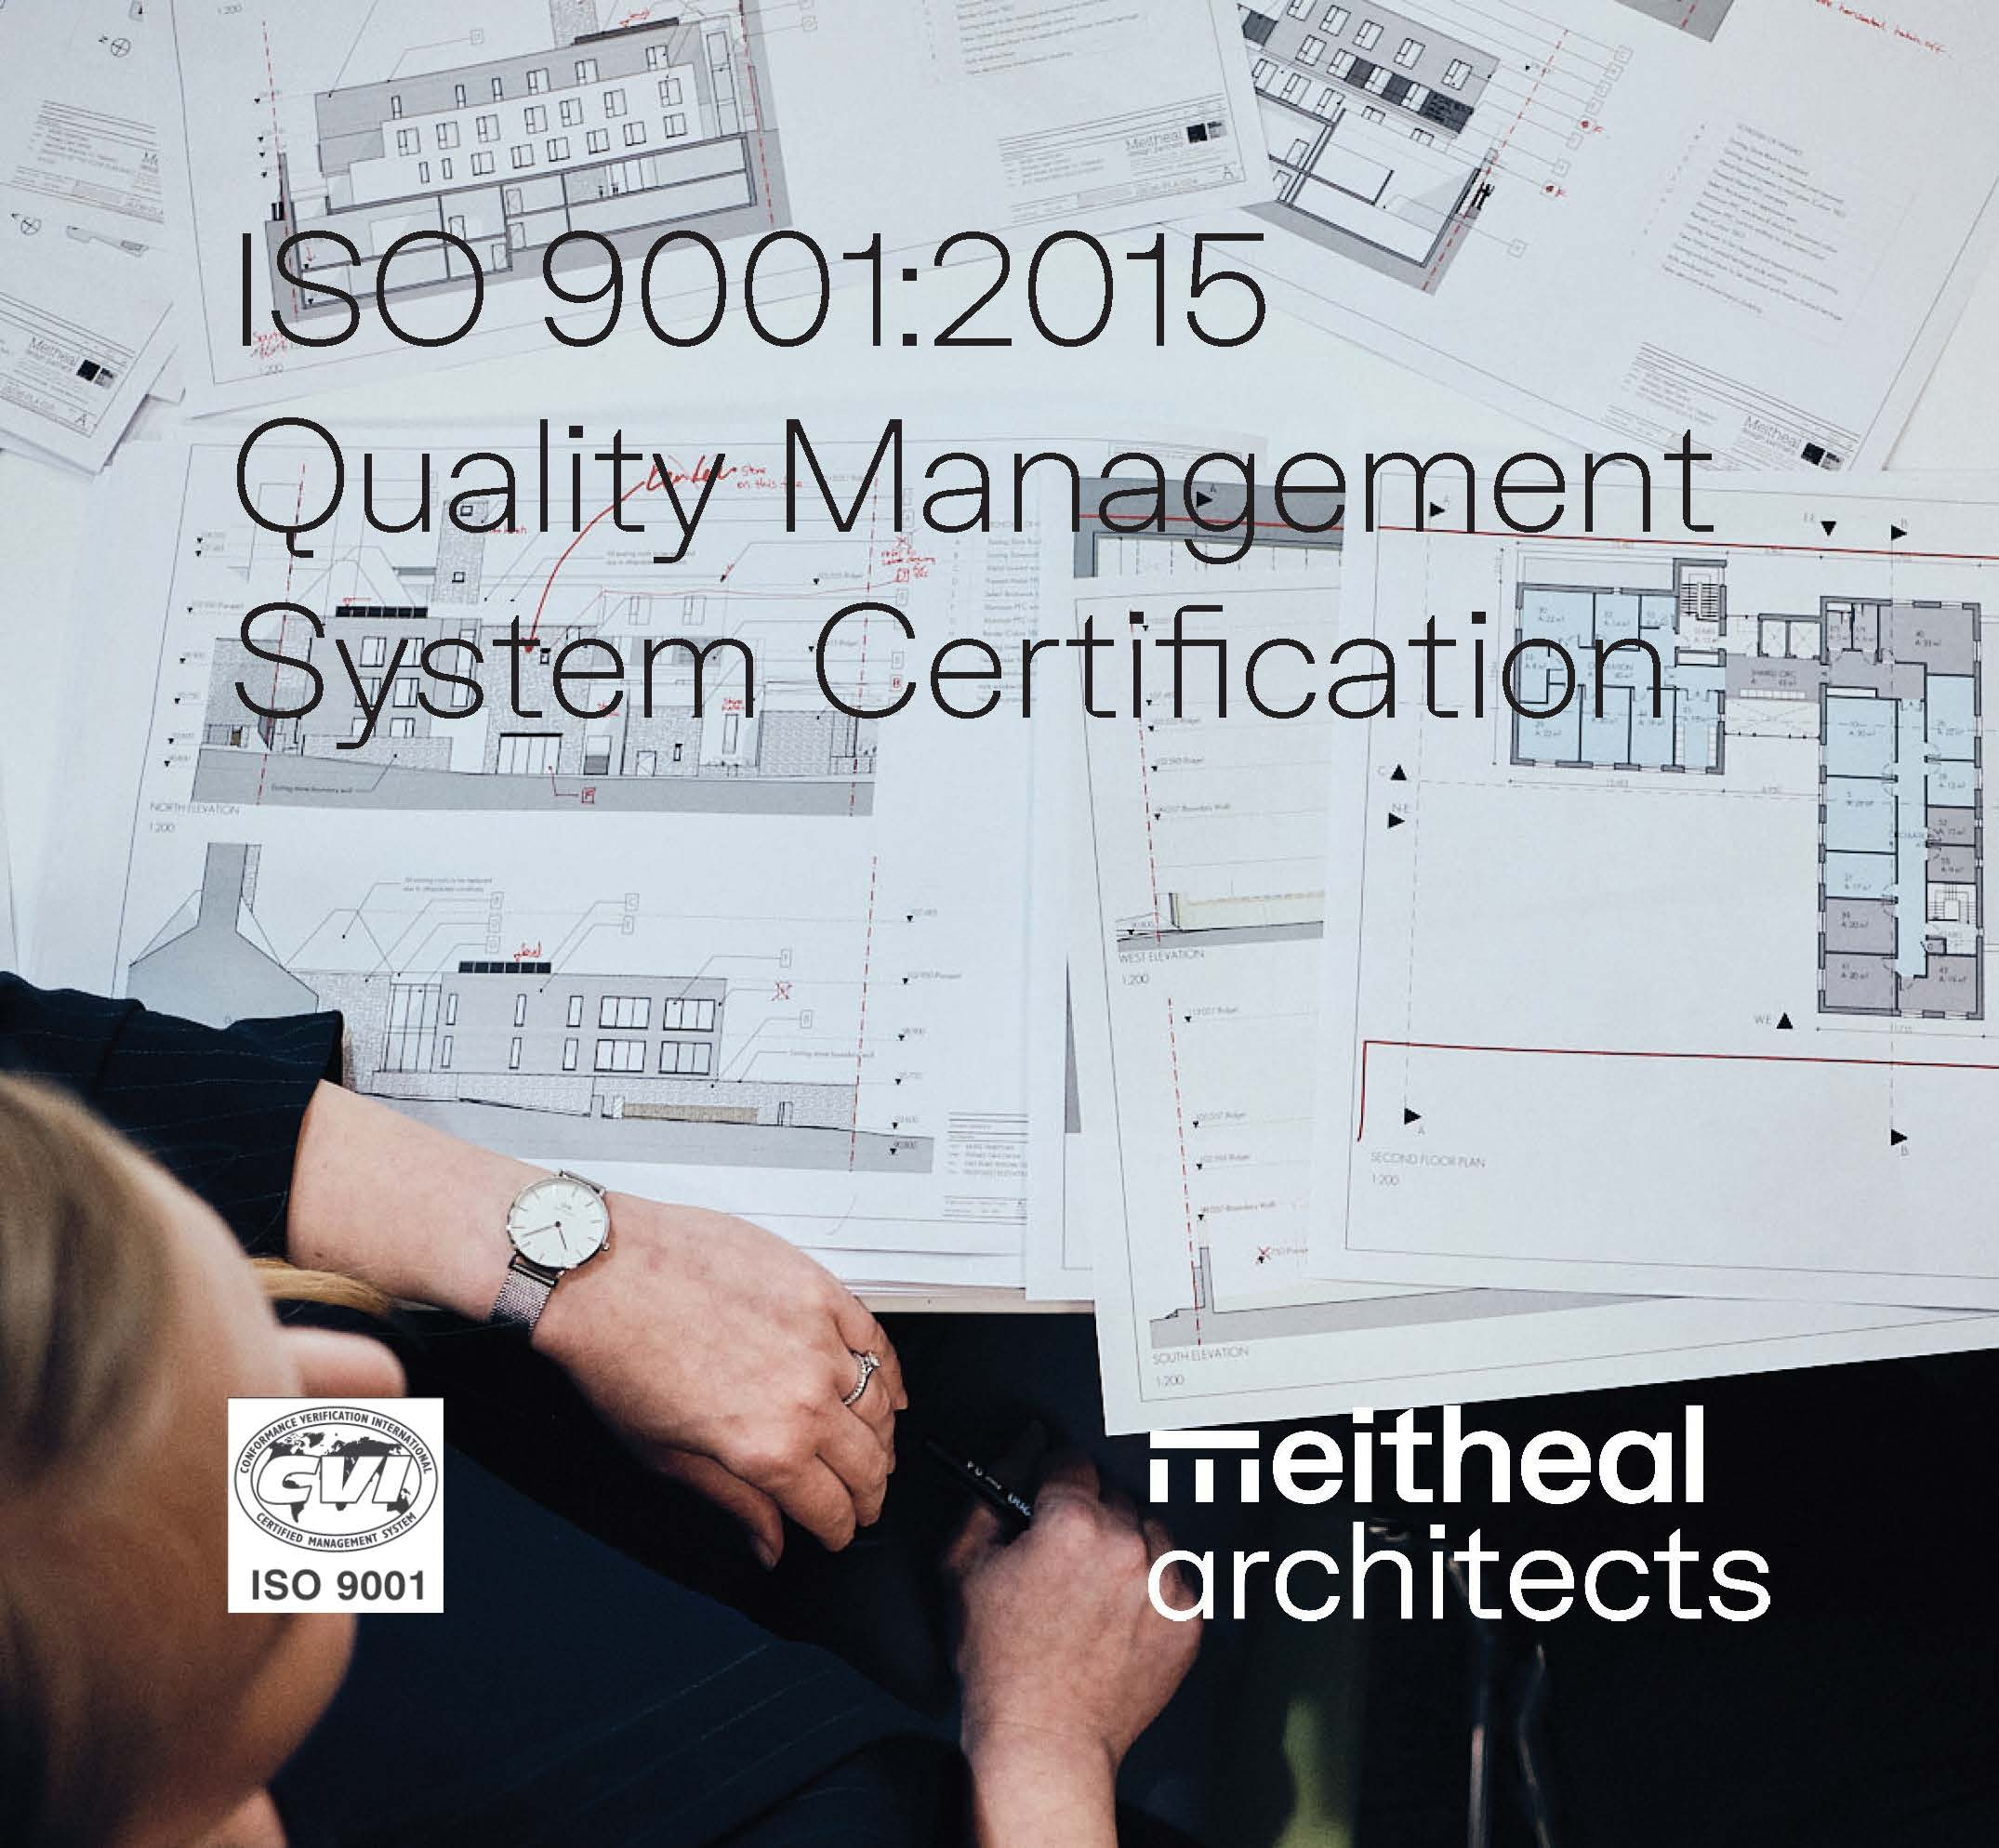 Quality Management at Meitheal Architects